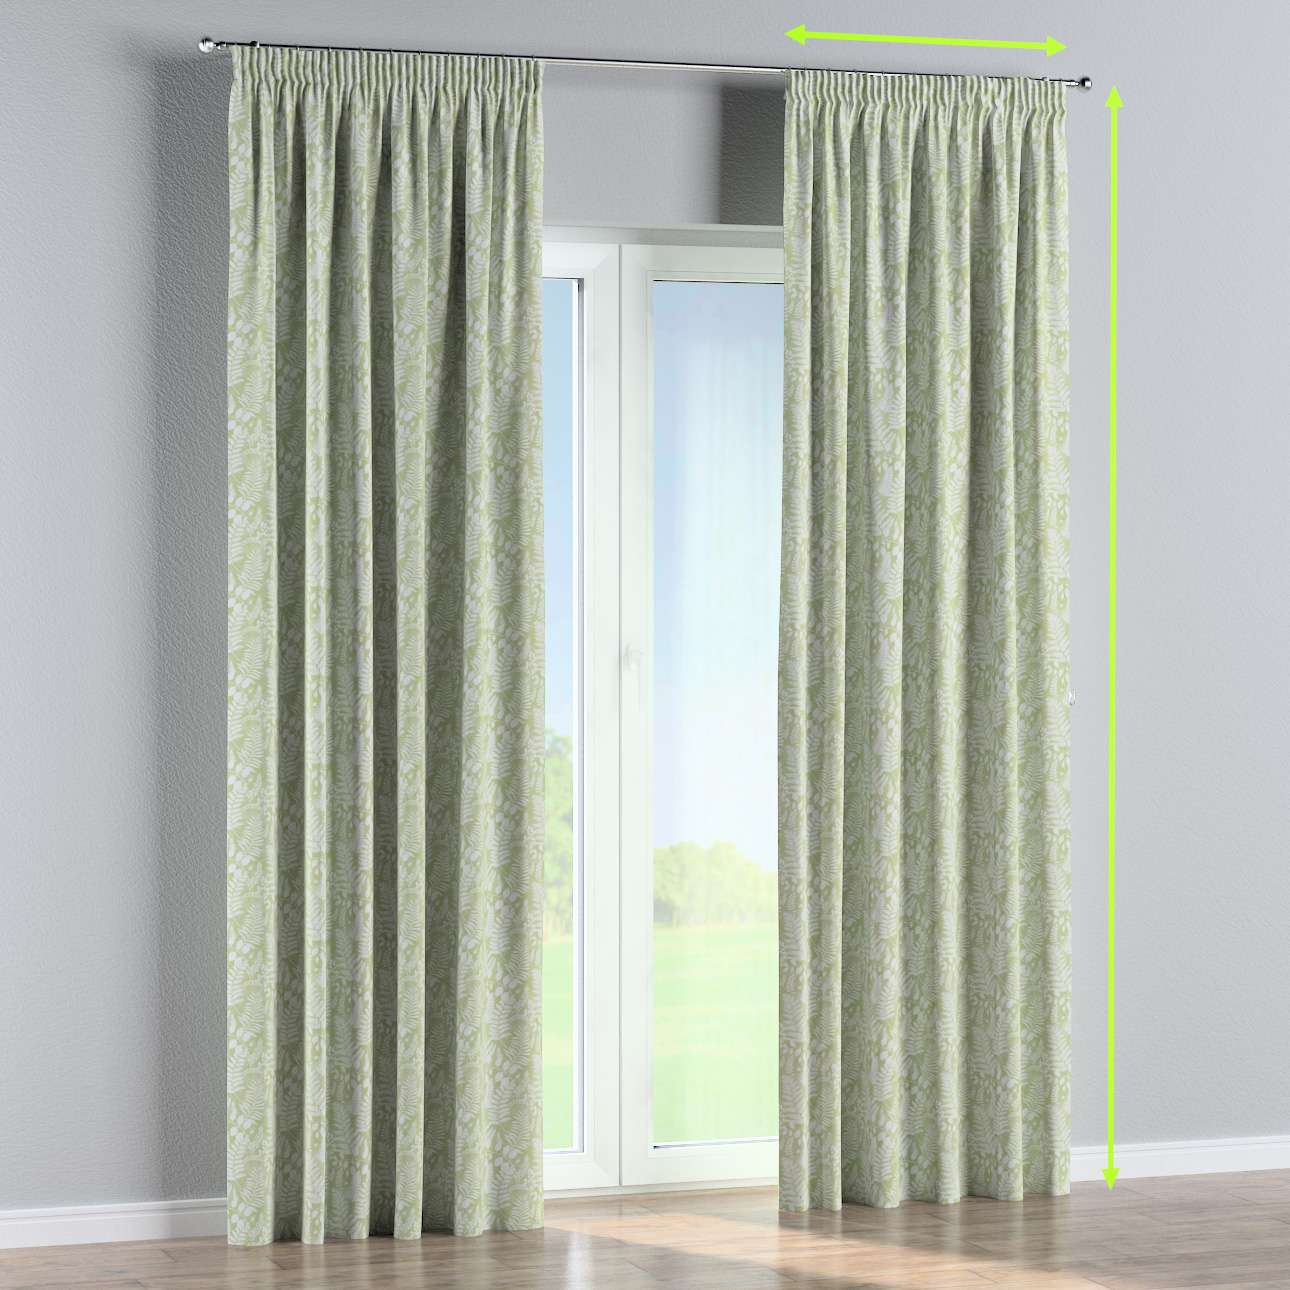 Pencil pleat curtains in collection Pastel Forest, fabric: 142-49